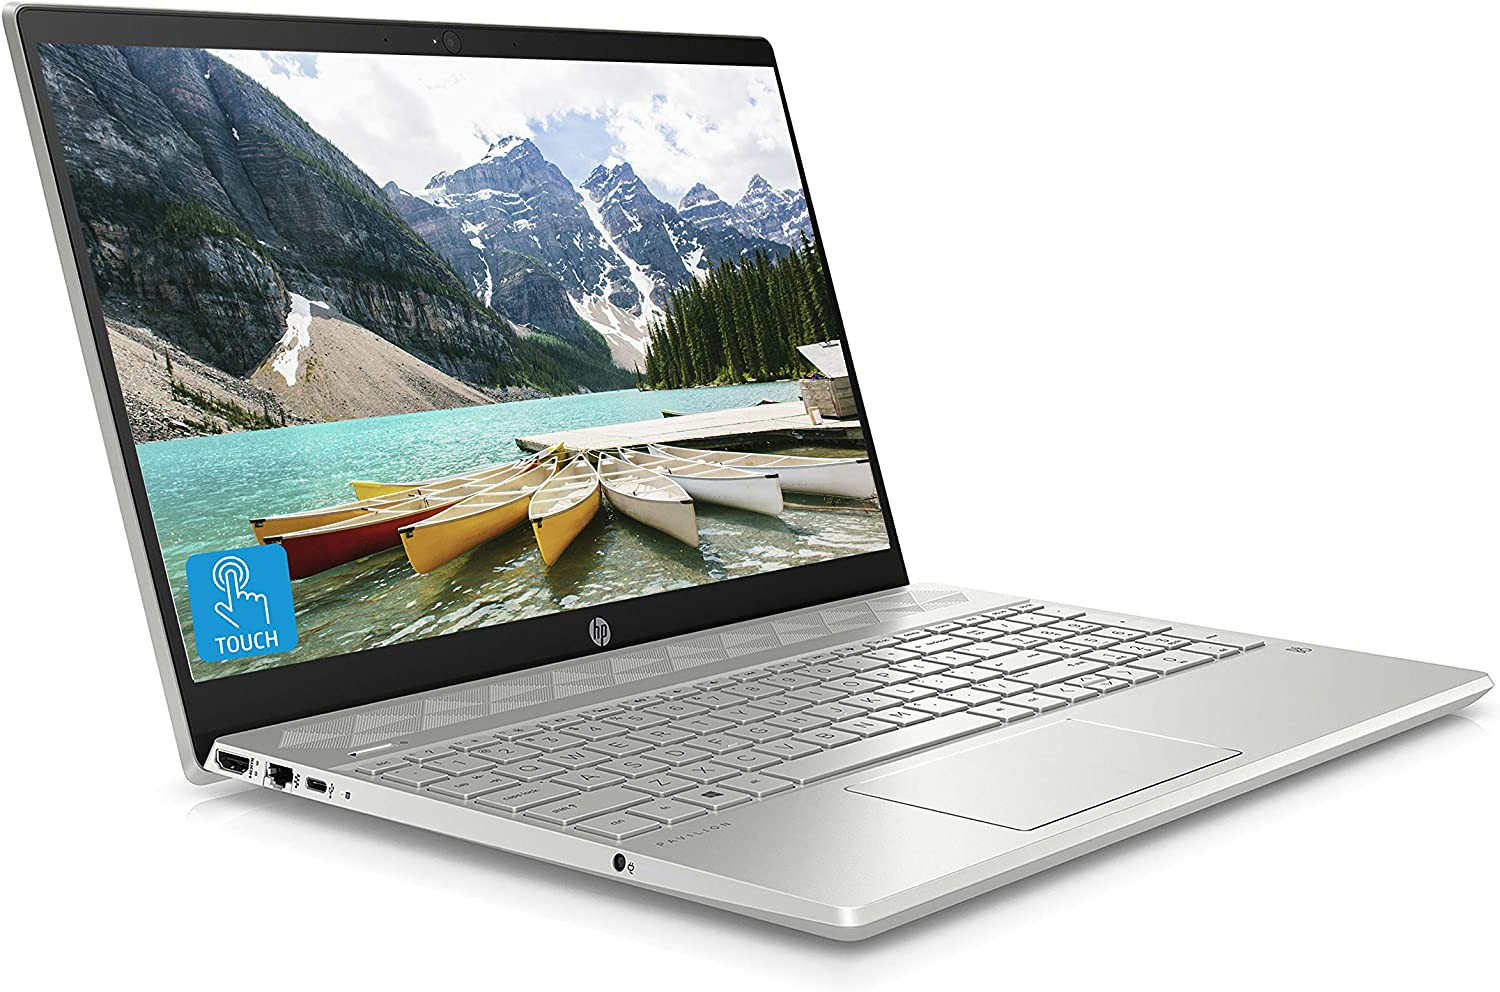 Hp Pavilion 15 Cw1004na 15 6 Inch Full Hd Touch Screen Laptop Amd Ryzen 3 3500u 8 Gb Ram 256 Gb Ssd Windows 10 Home Silver Amazon Co Uk Computers Accessories